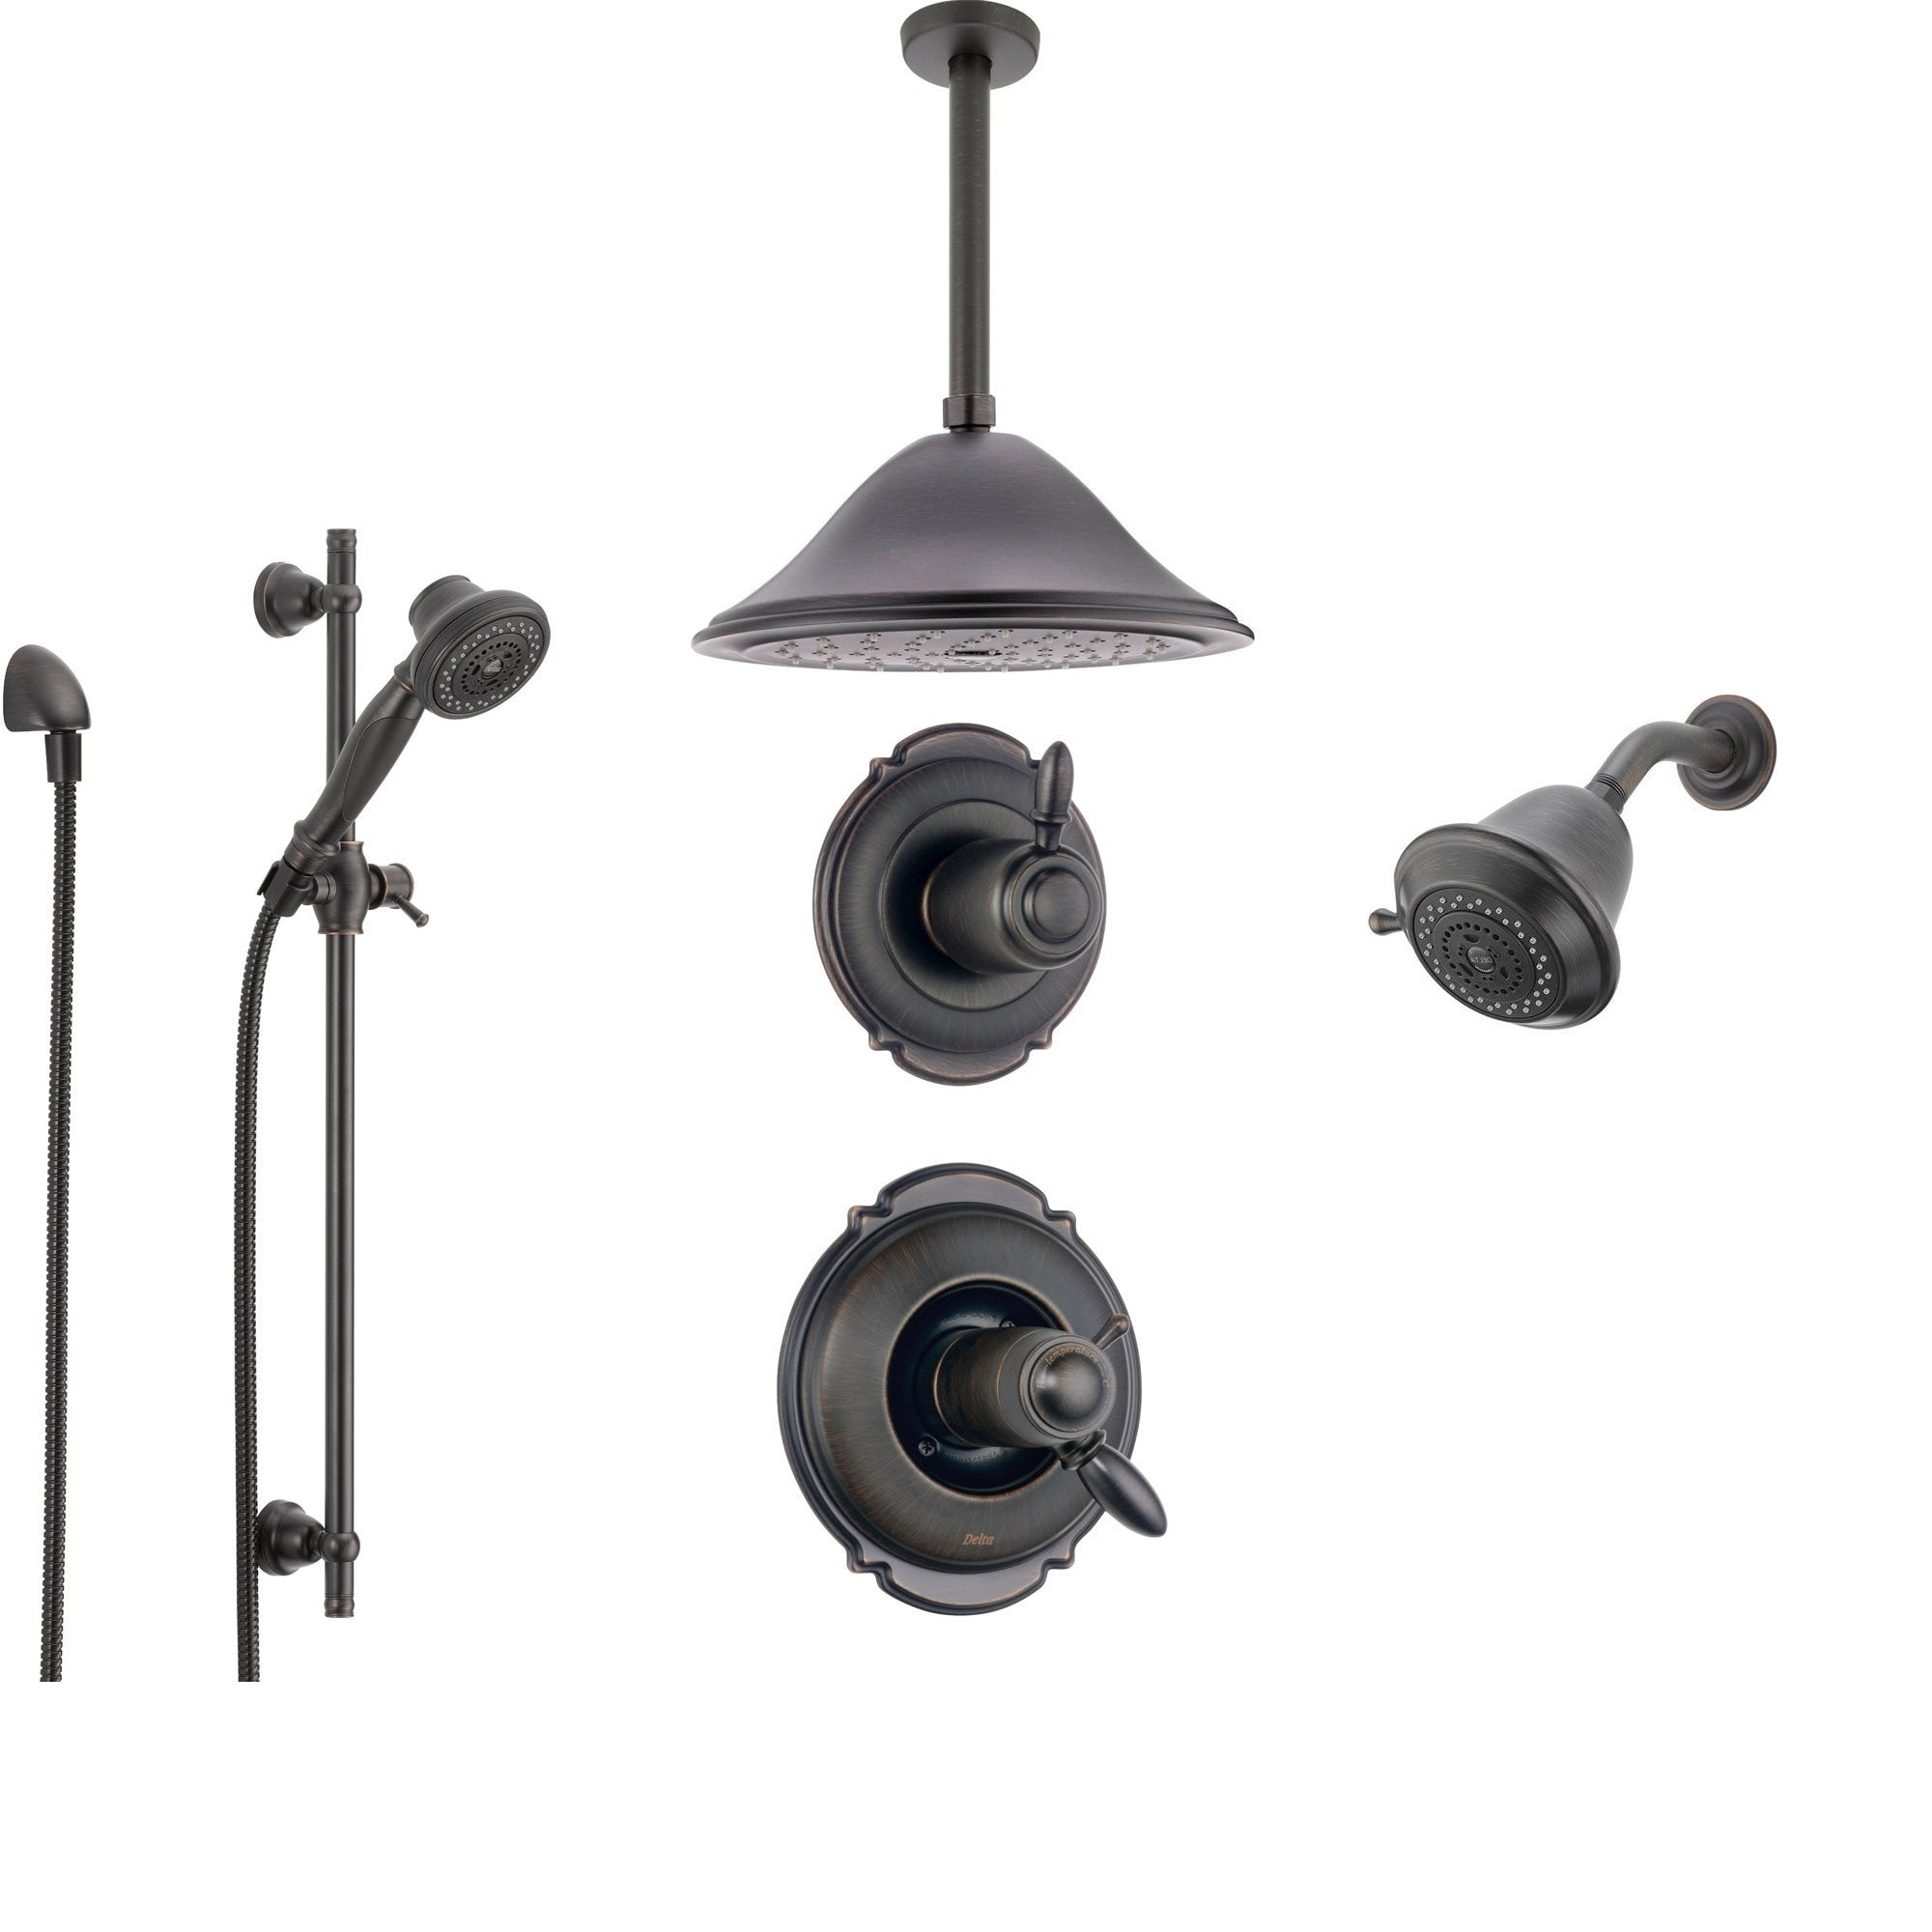 Delta Victorian Venetian Bronze Shower System with Thermostatic Shower Handle, 6-setting Diverter, Large Ceiling Mount Showerhead, Handheld Shower, and Wall Mount Showerhead SS17T5594RB